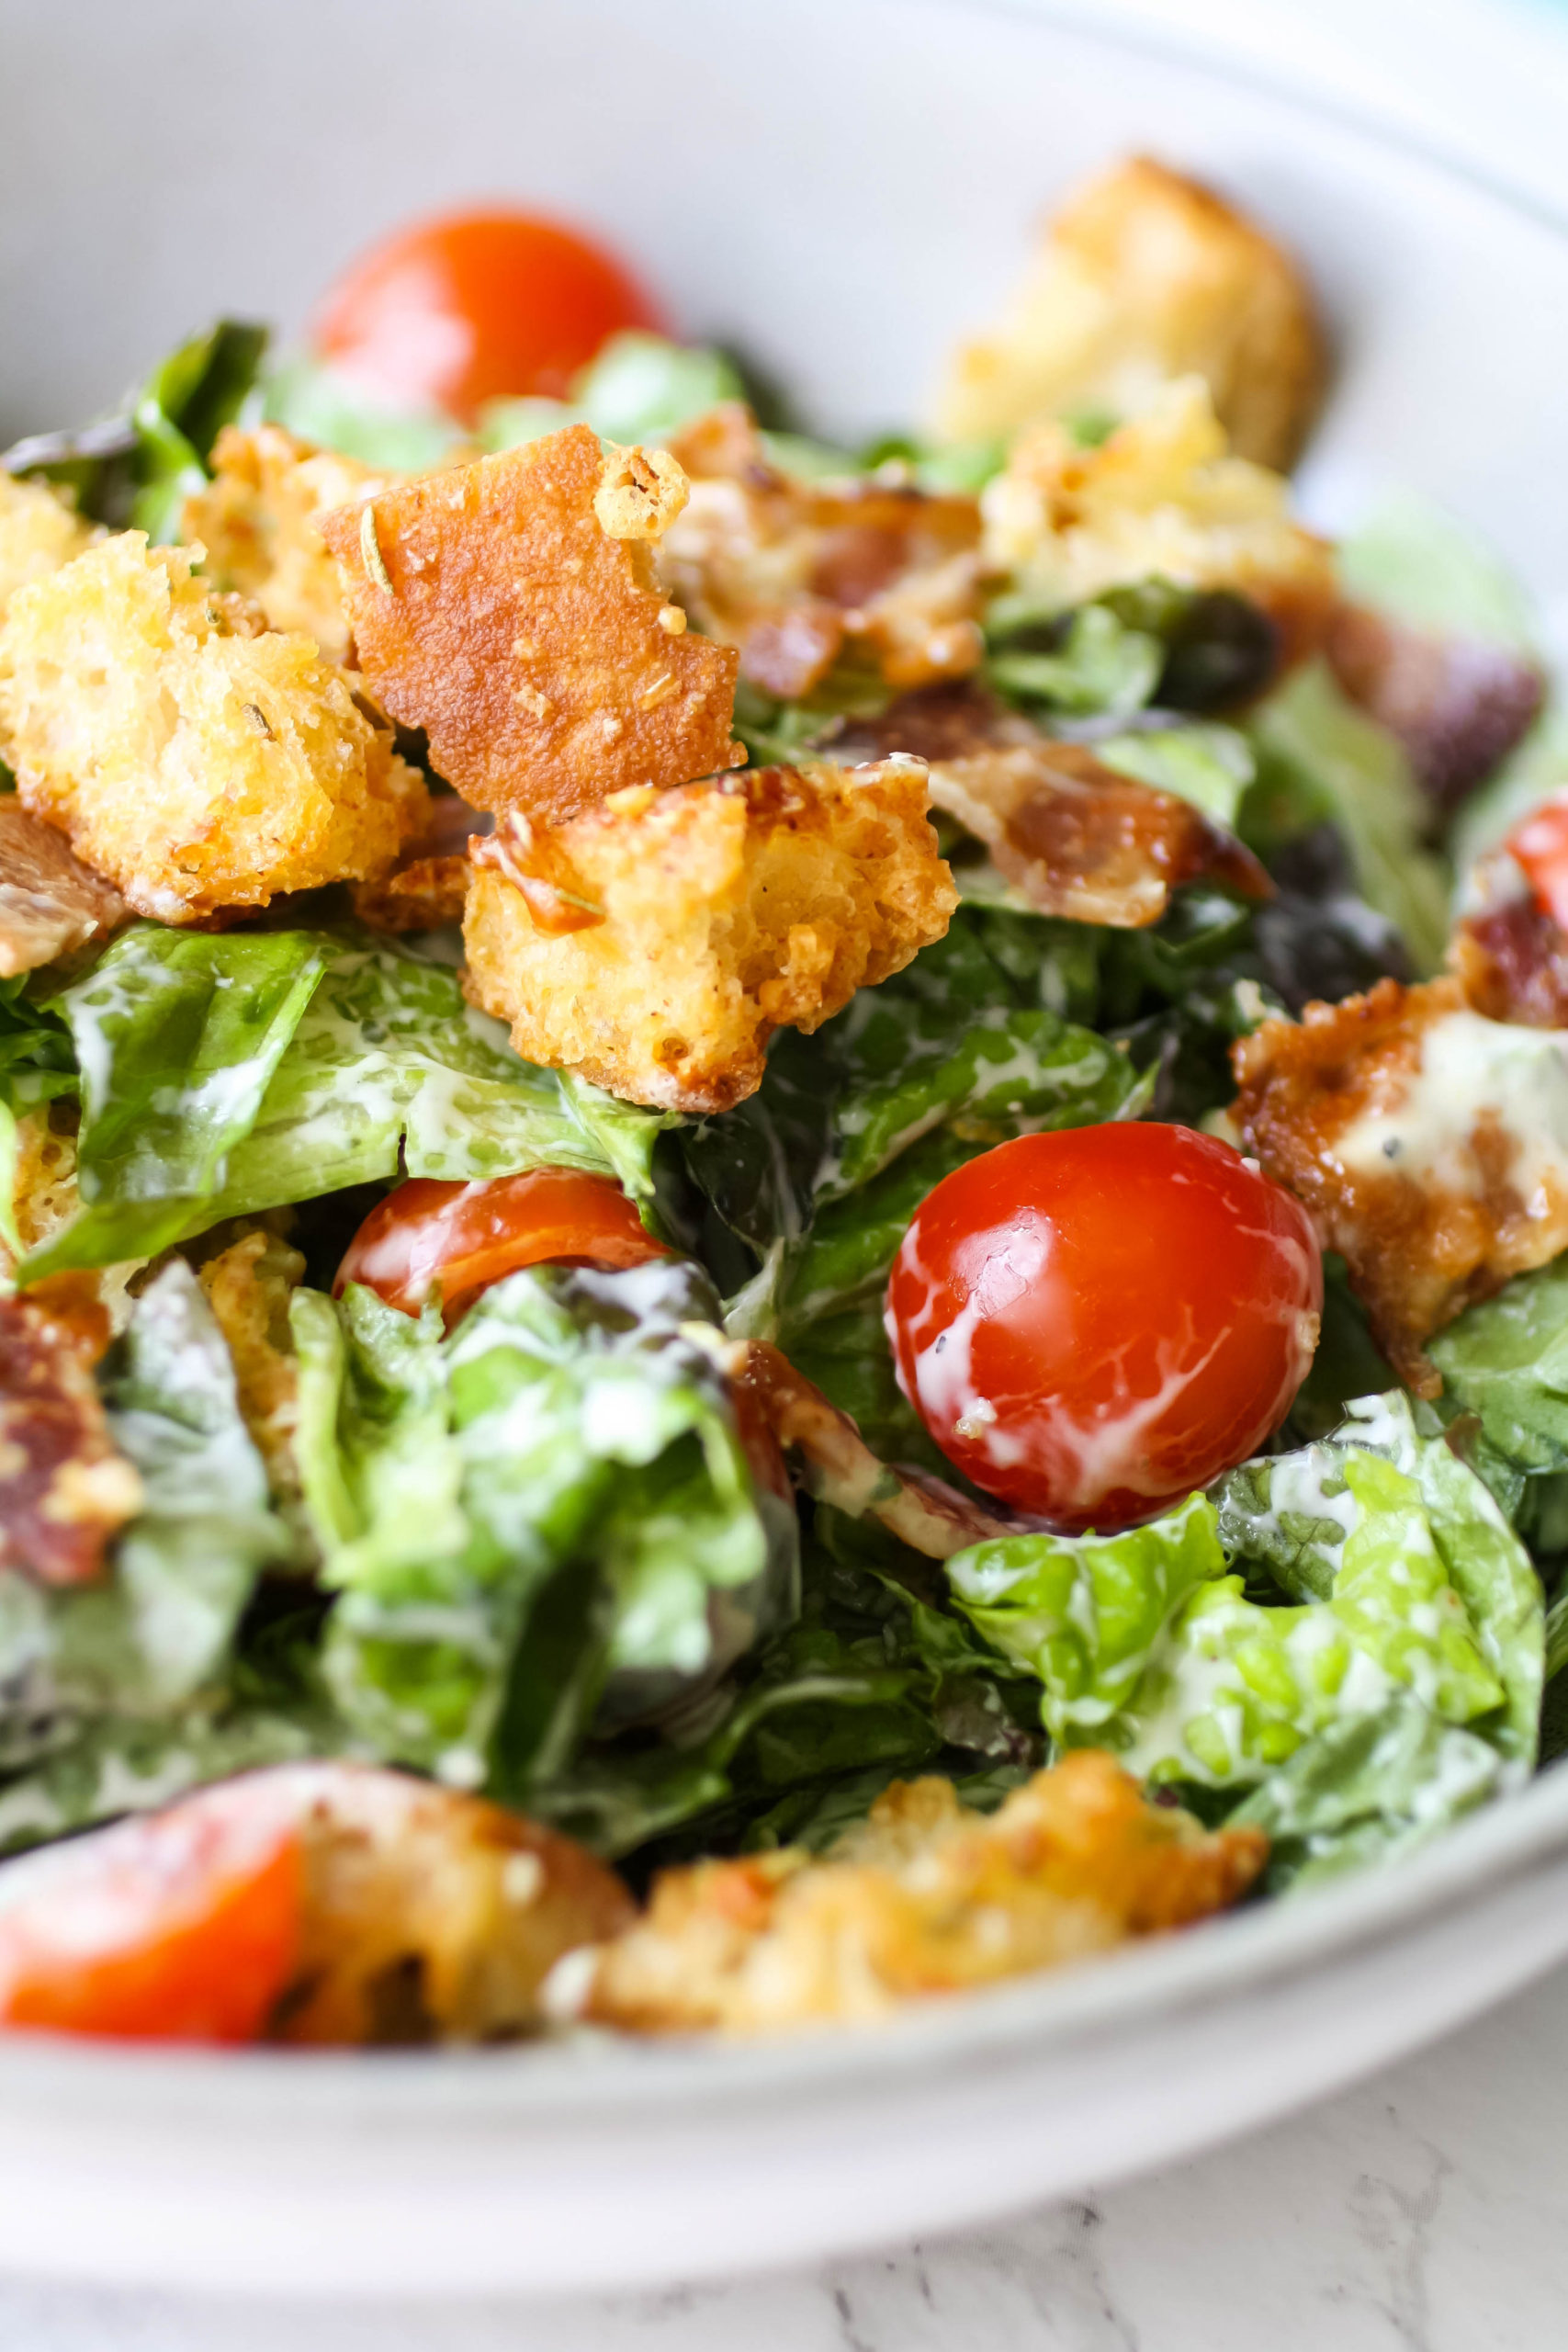 Dig in to this BLT Salad with Garlic-Basil Dressing